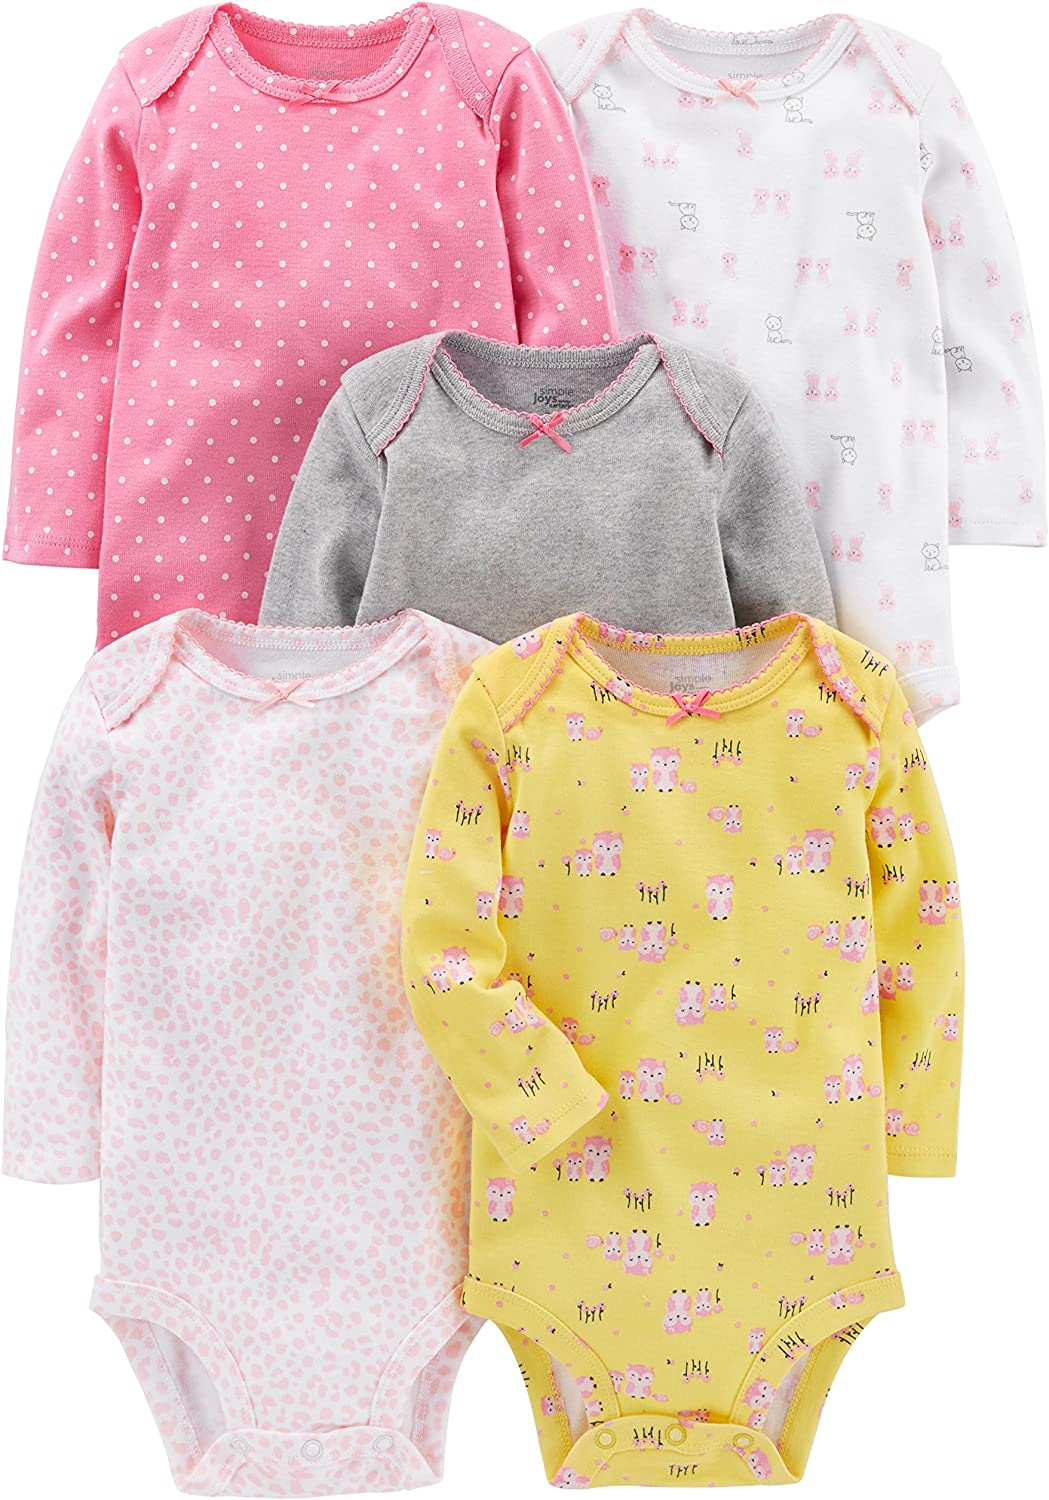 Simple Joys by Carters Baby Girls Lot de 5 bodies manches longues